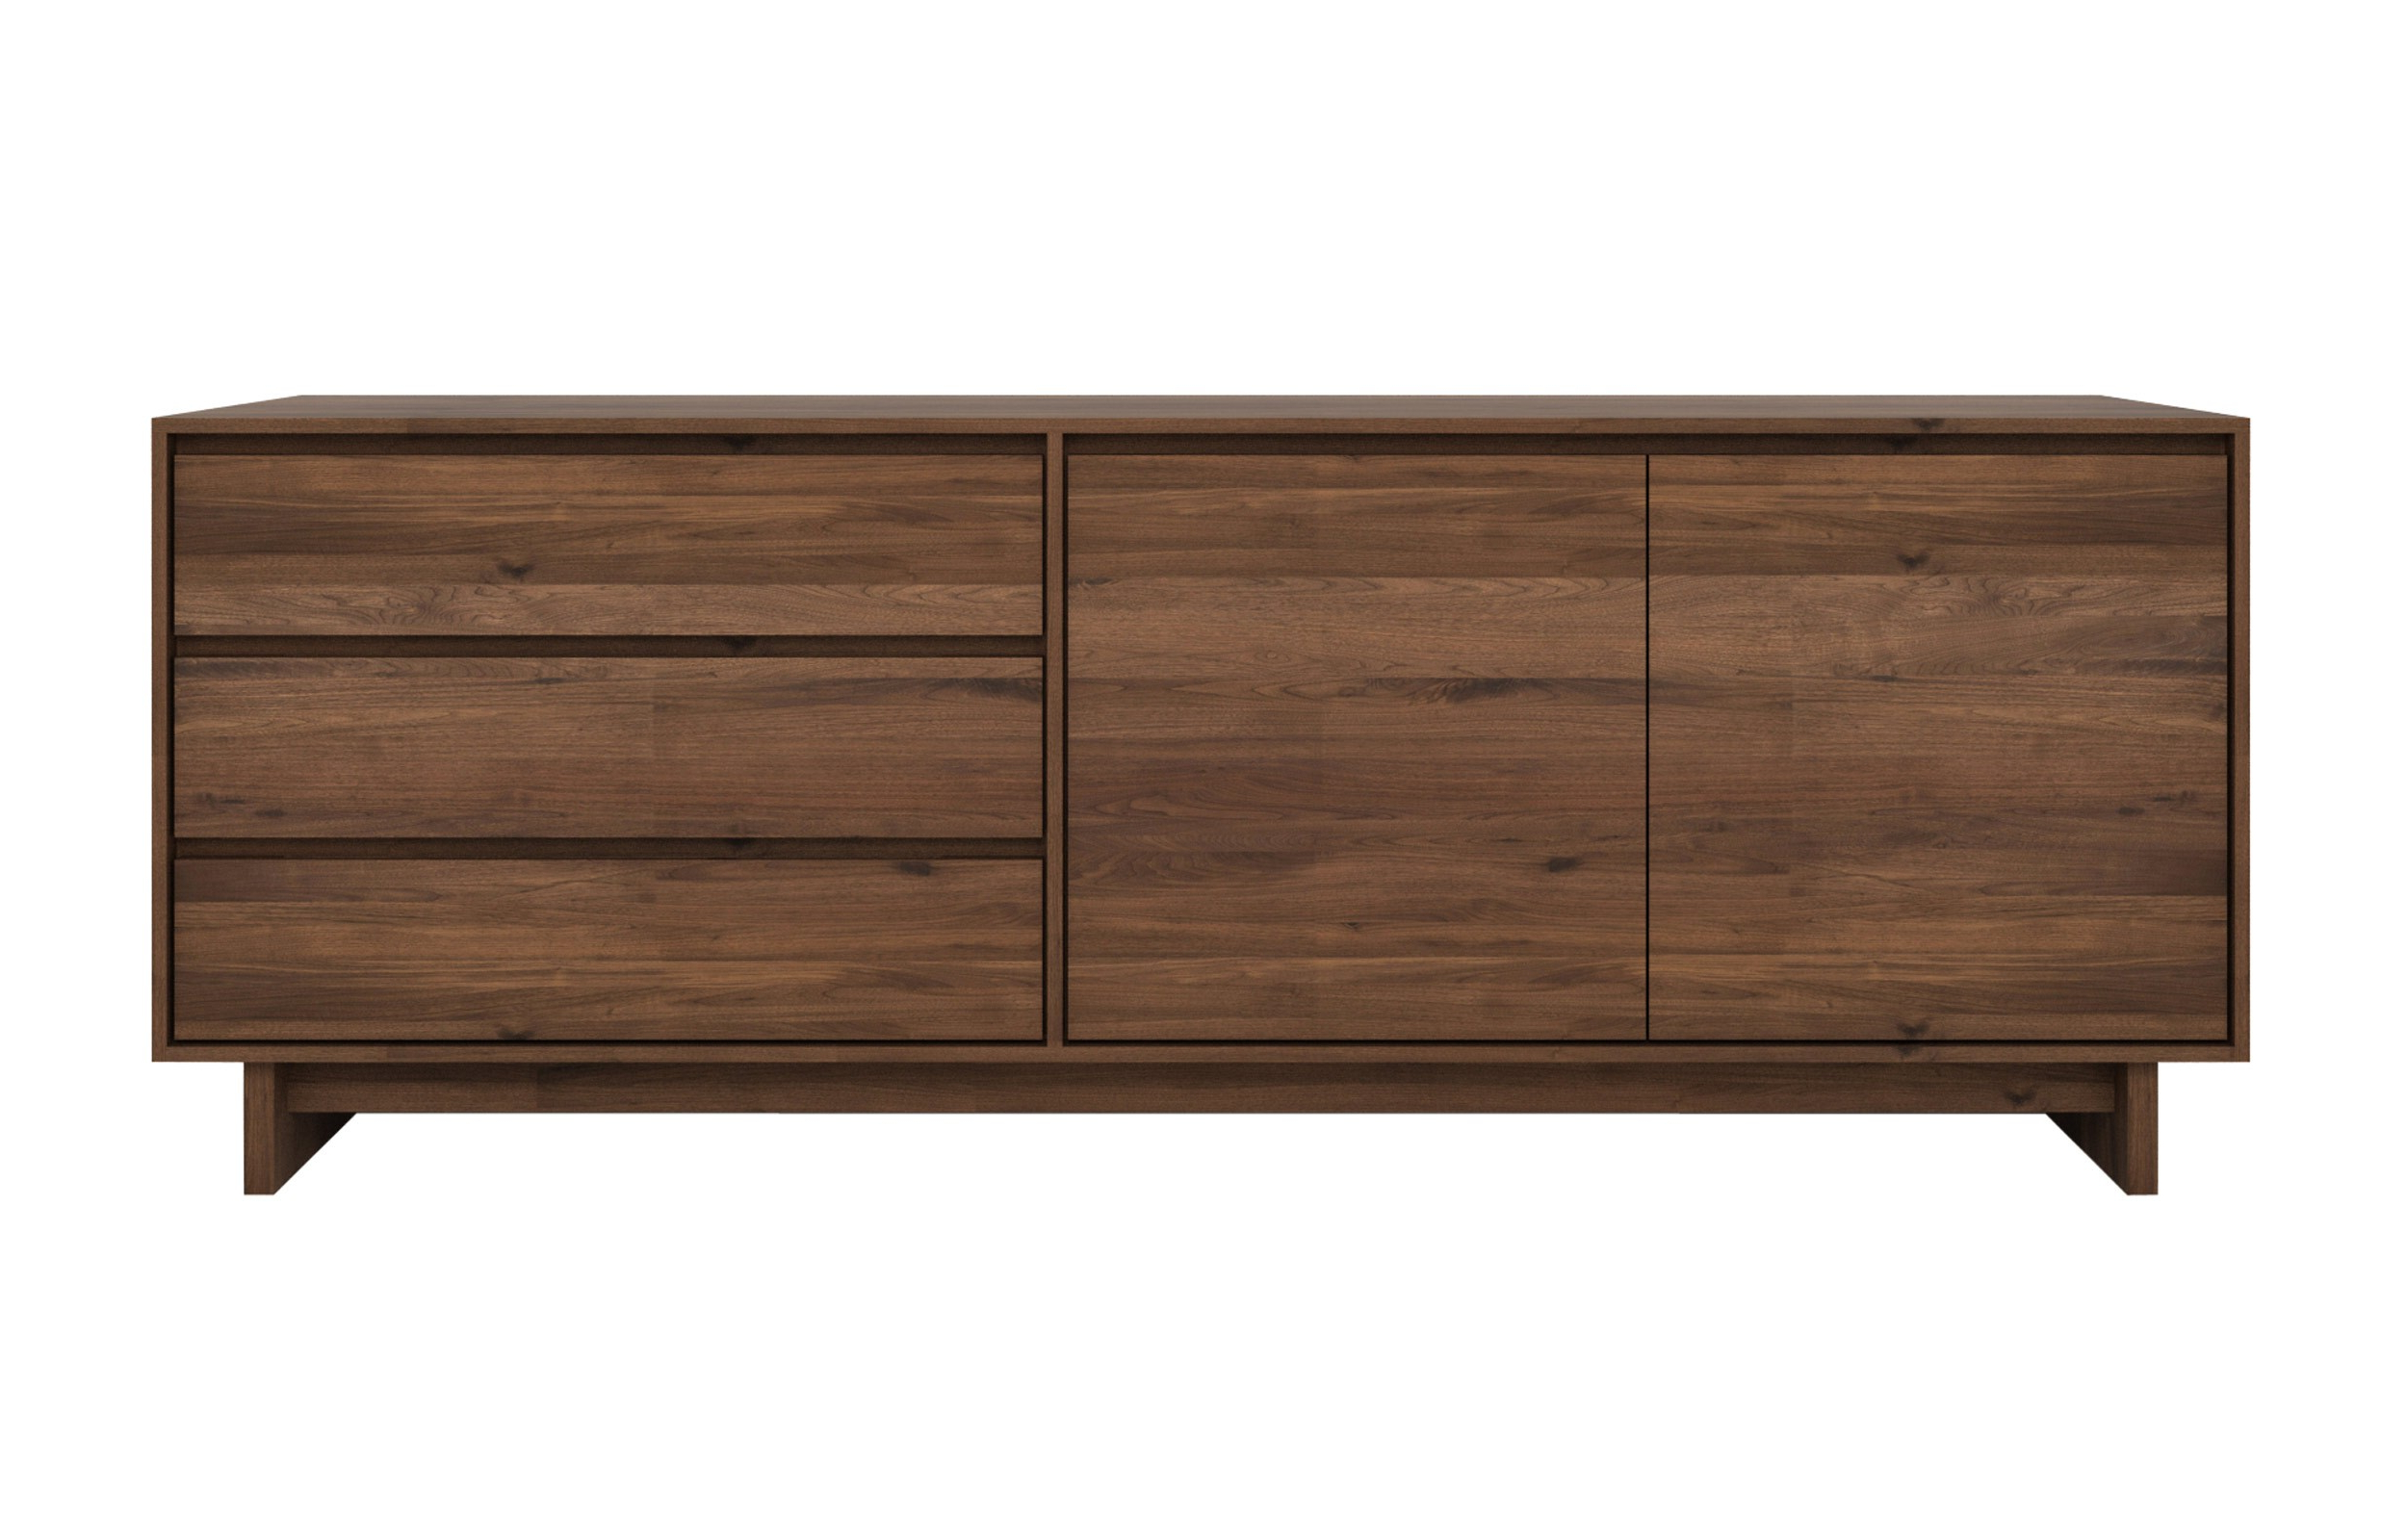 Walnut Finish 4 Door Sideboards Throughout Newest Wave Walnut Sideboard (View 9 of 20)